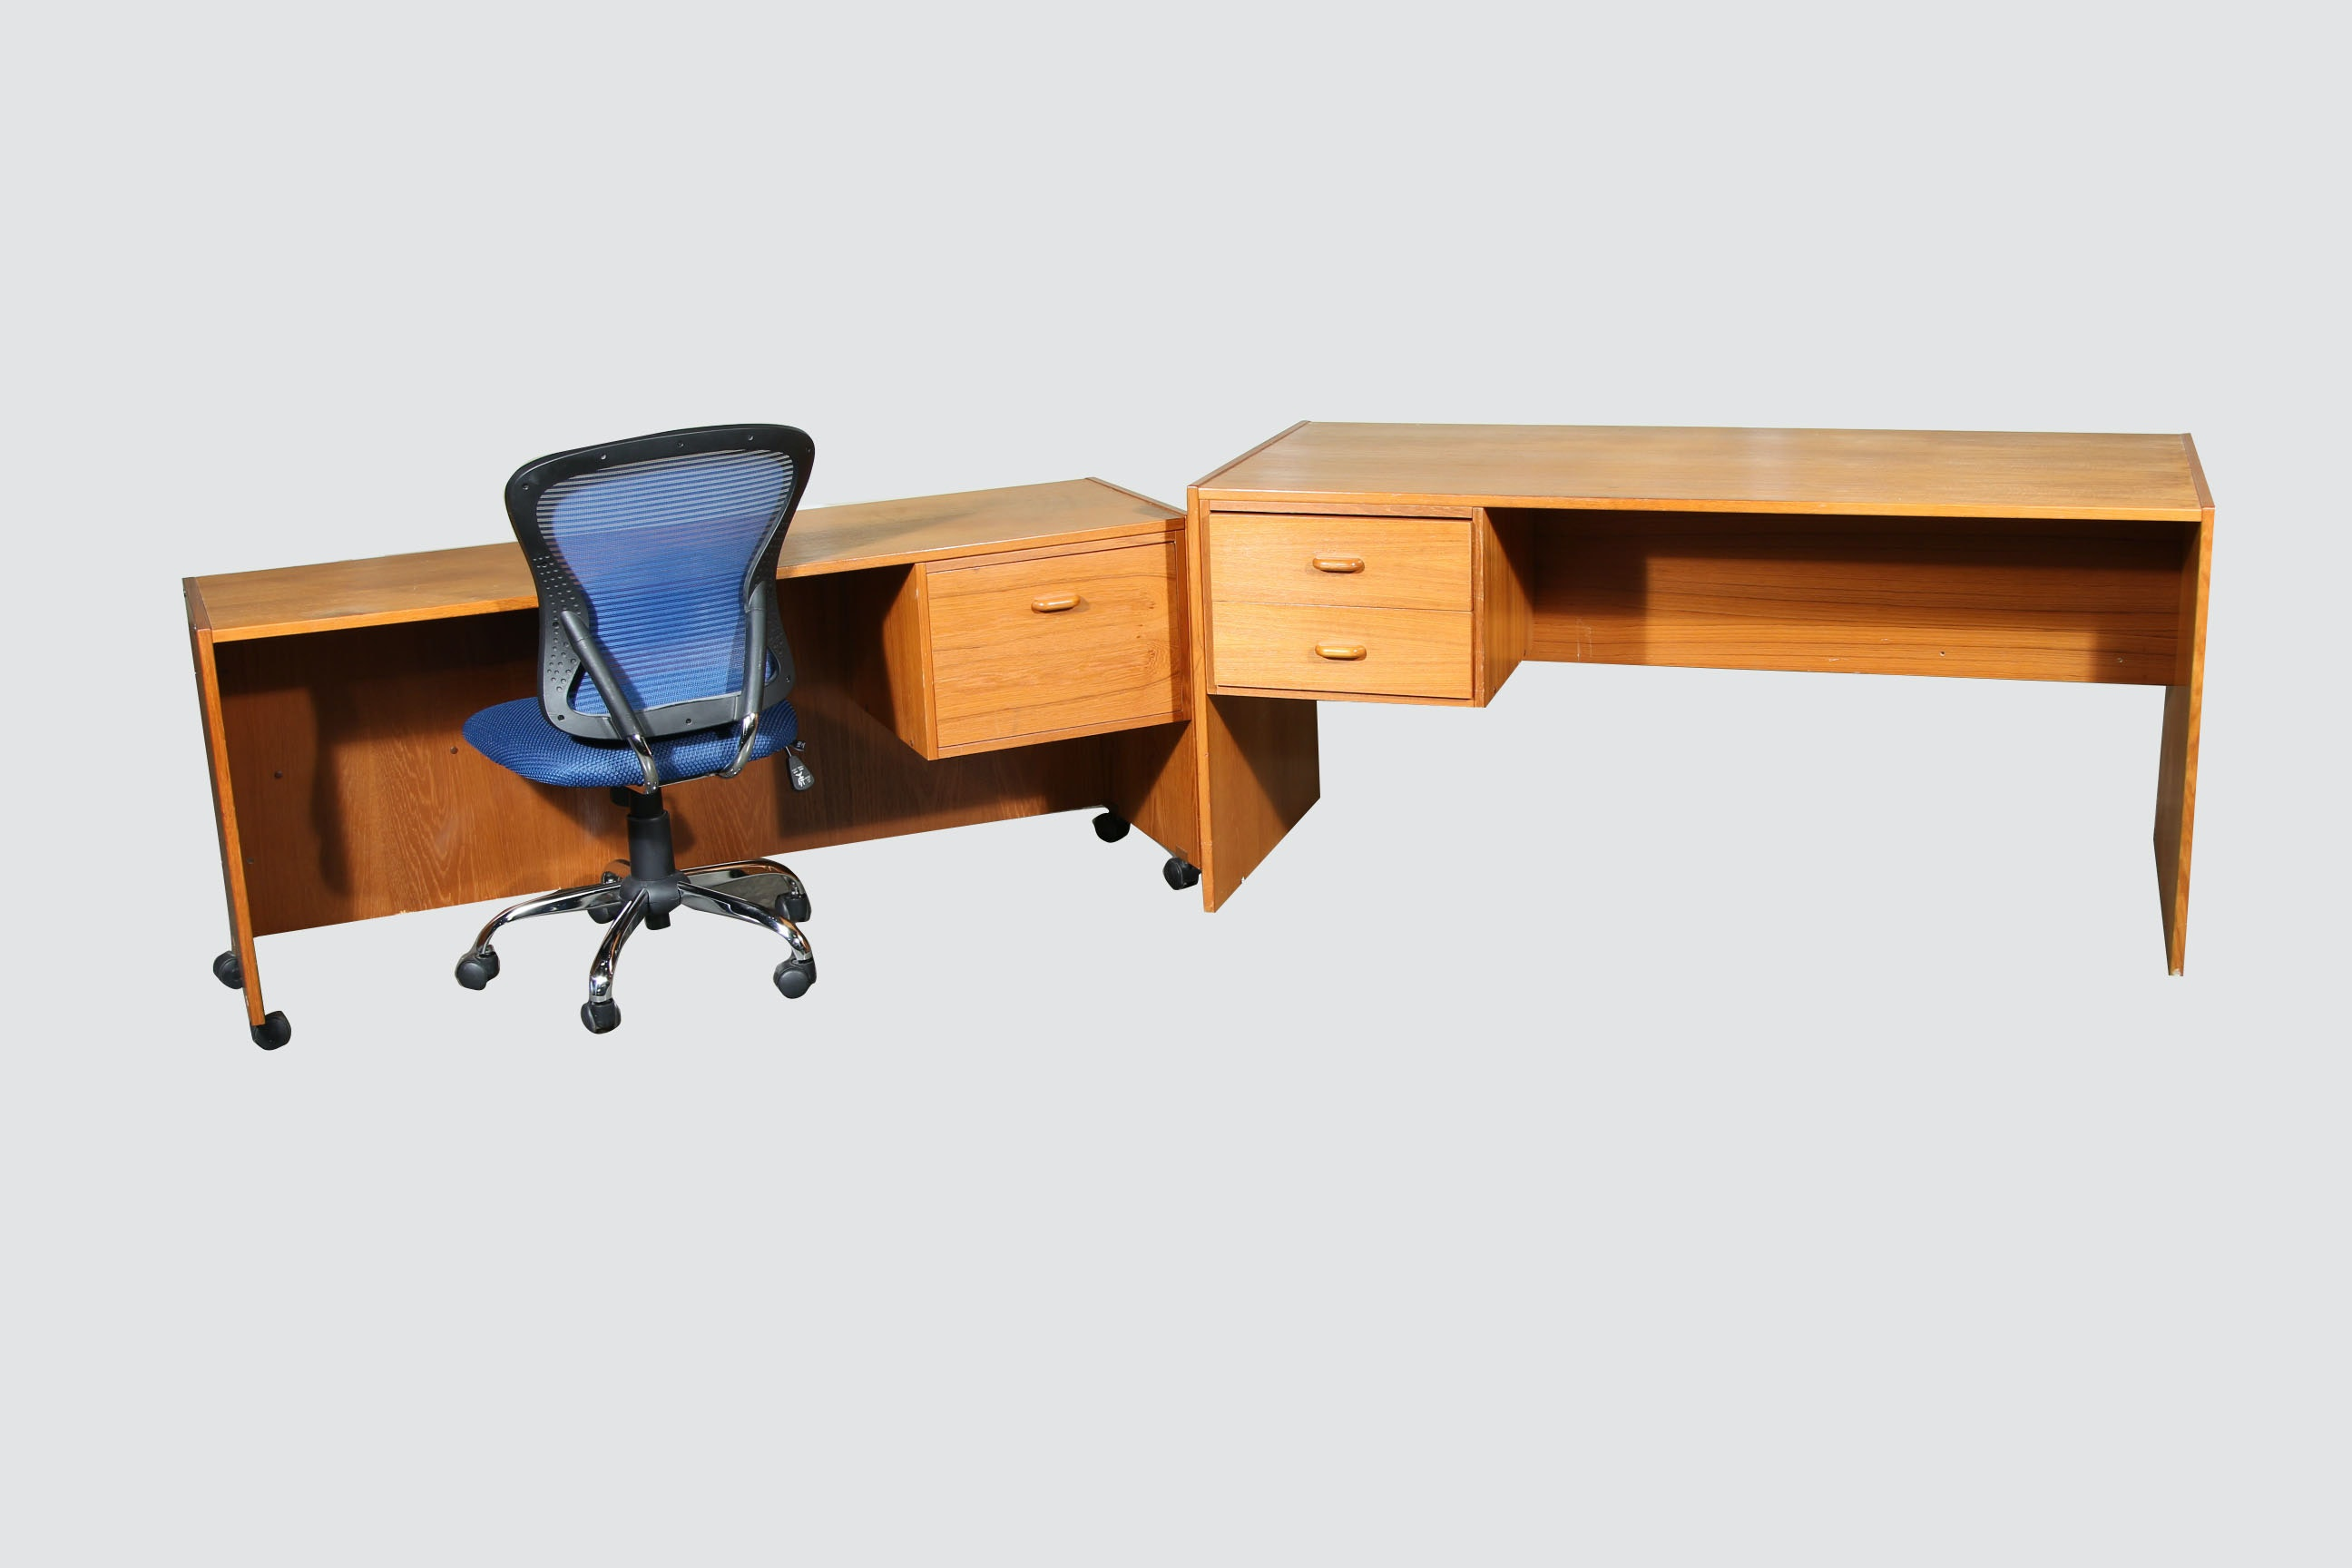 Pair of Contemporary Desks and an Office Chair